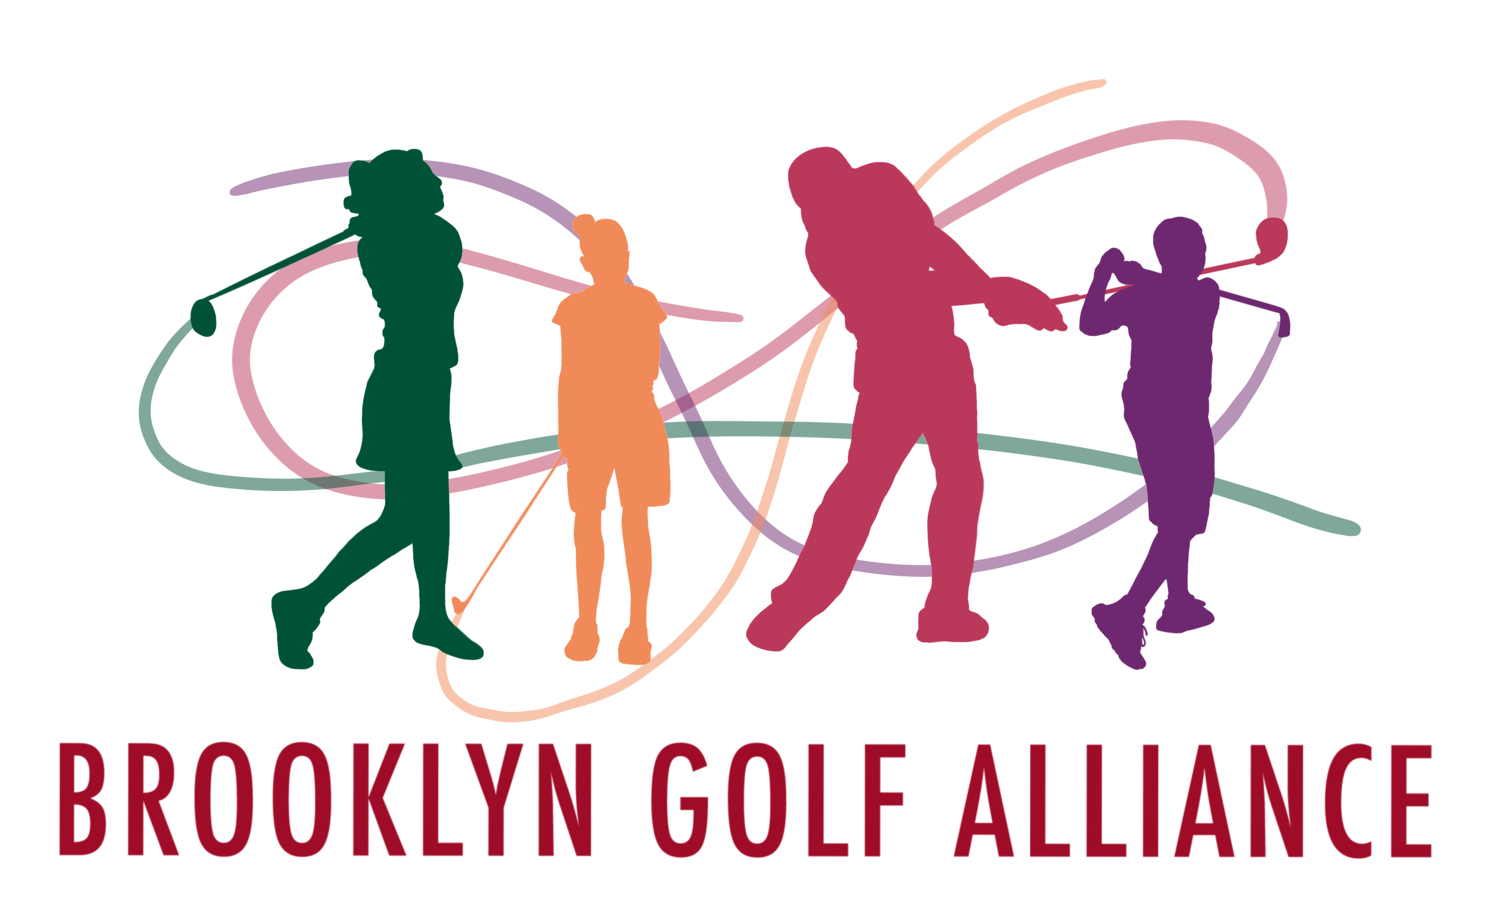 Brooklyn Golf Alliance